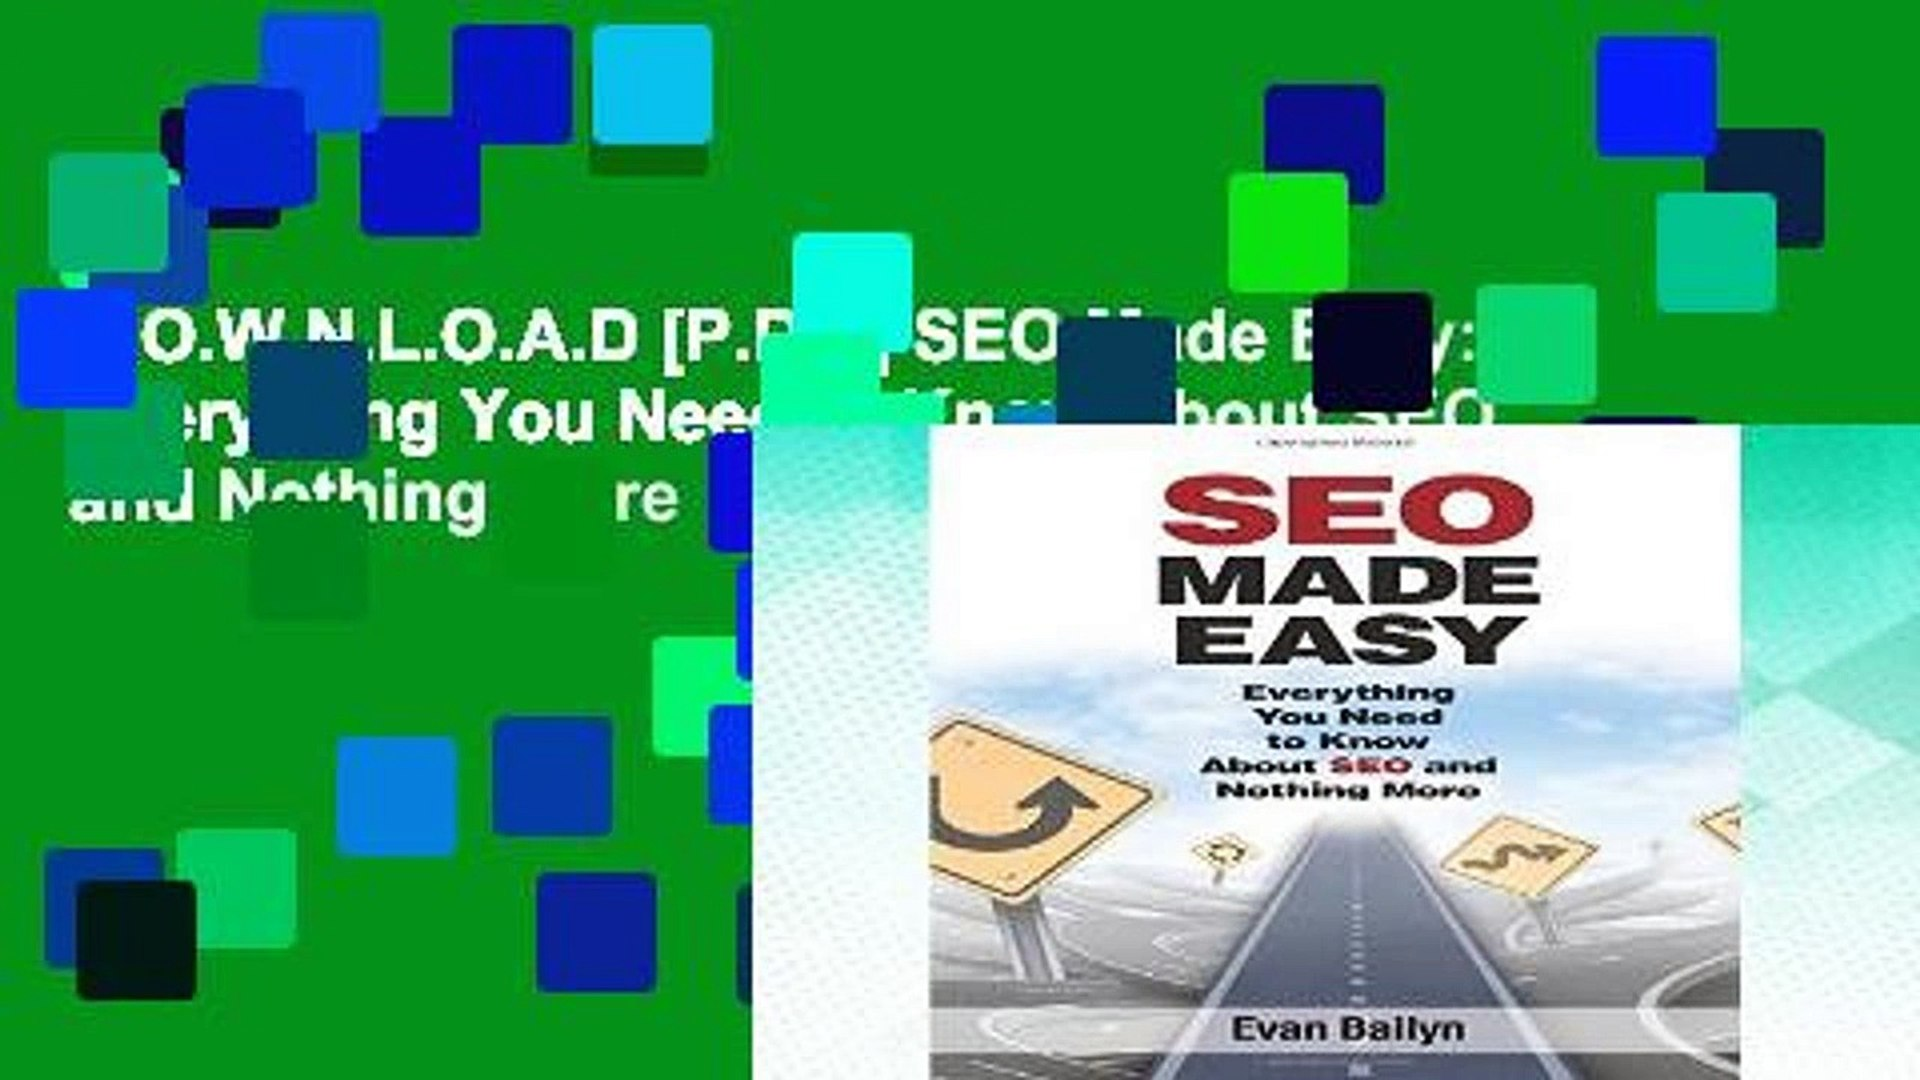 D.O.W.N.L.O.A.D [P.D.F] SEO Made Easy: Everything You Need to Know About SEO and Nothing More